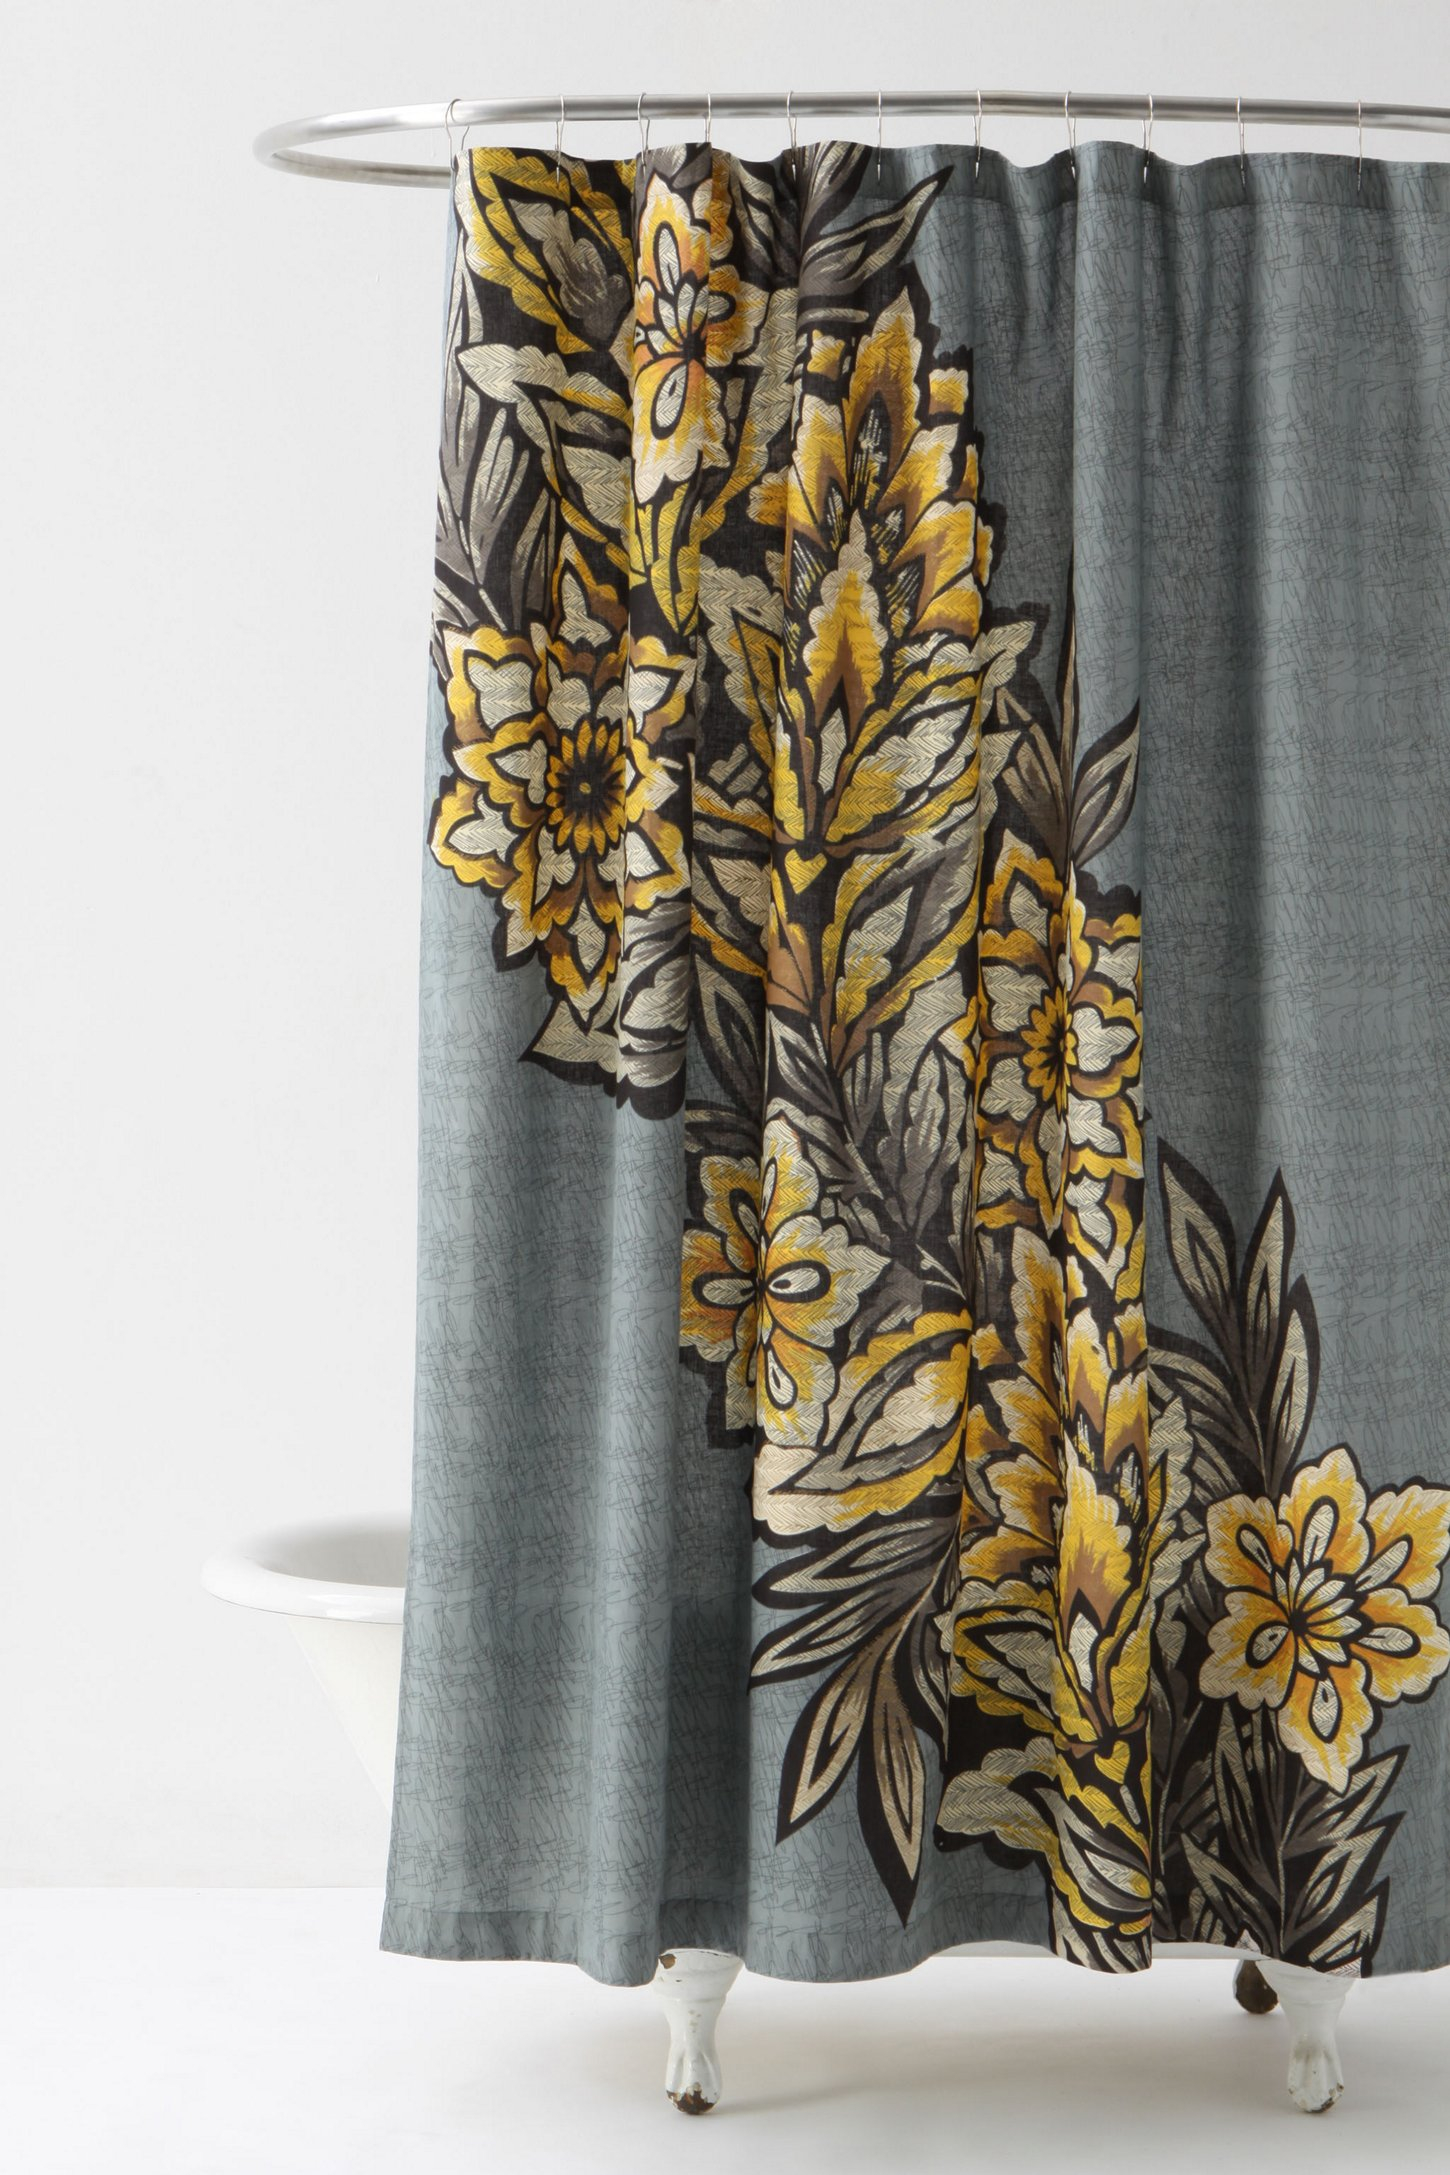 Curtain Wondrous Southwestern Shower Curtain For Mesmerizing Home inside dimensions 1450 X 2175